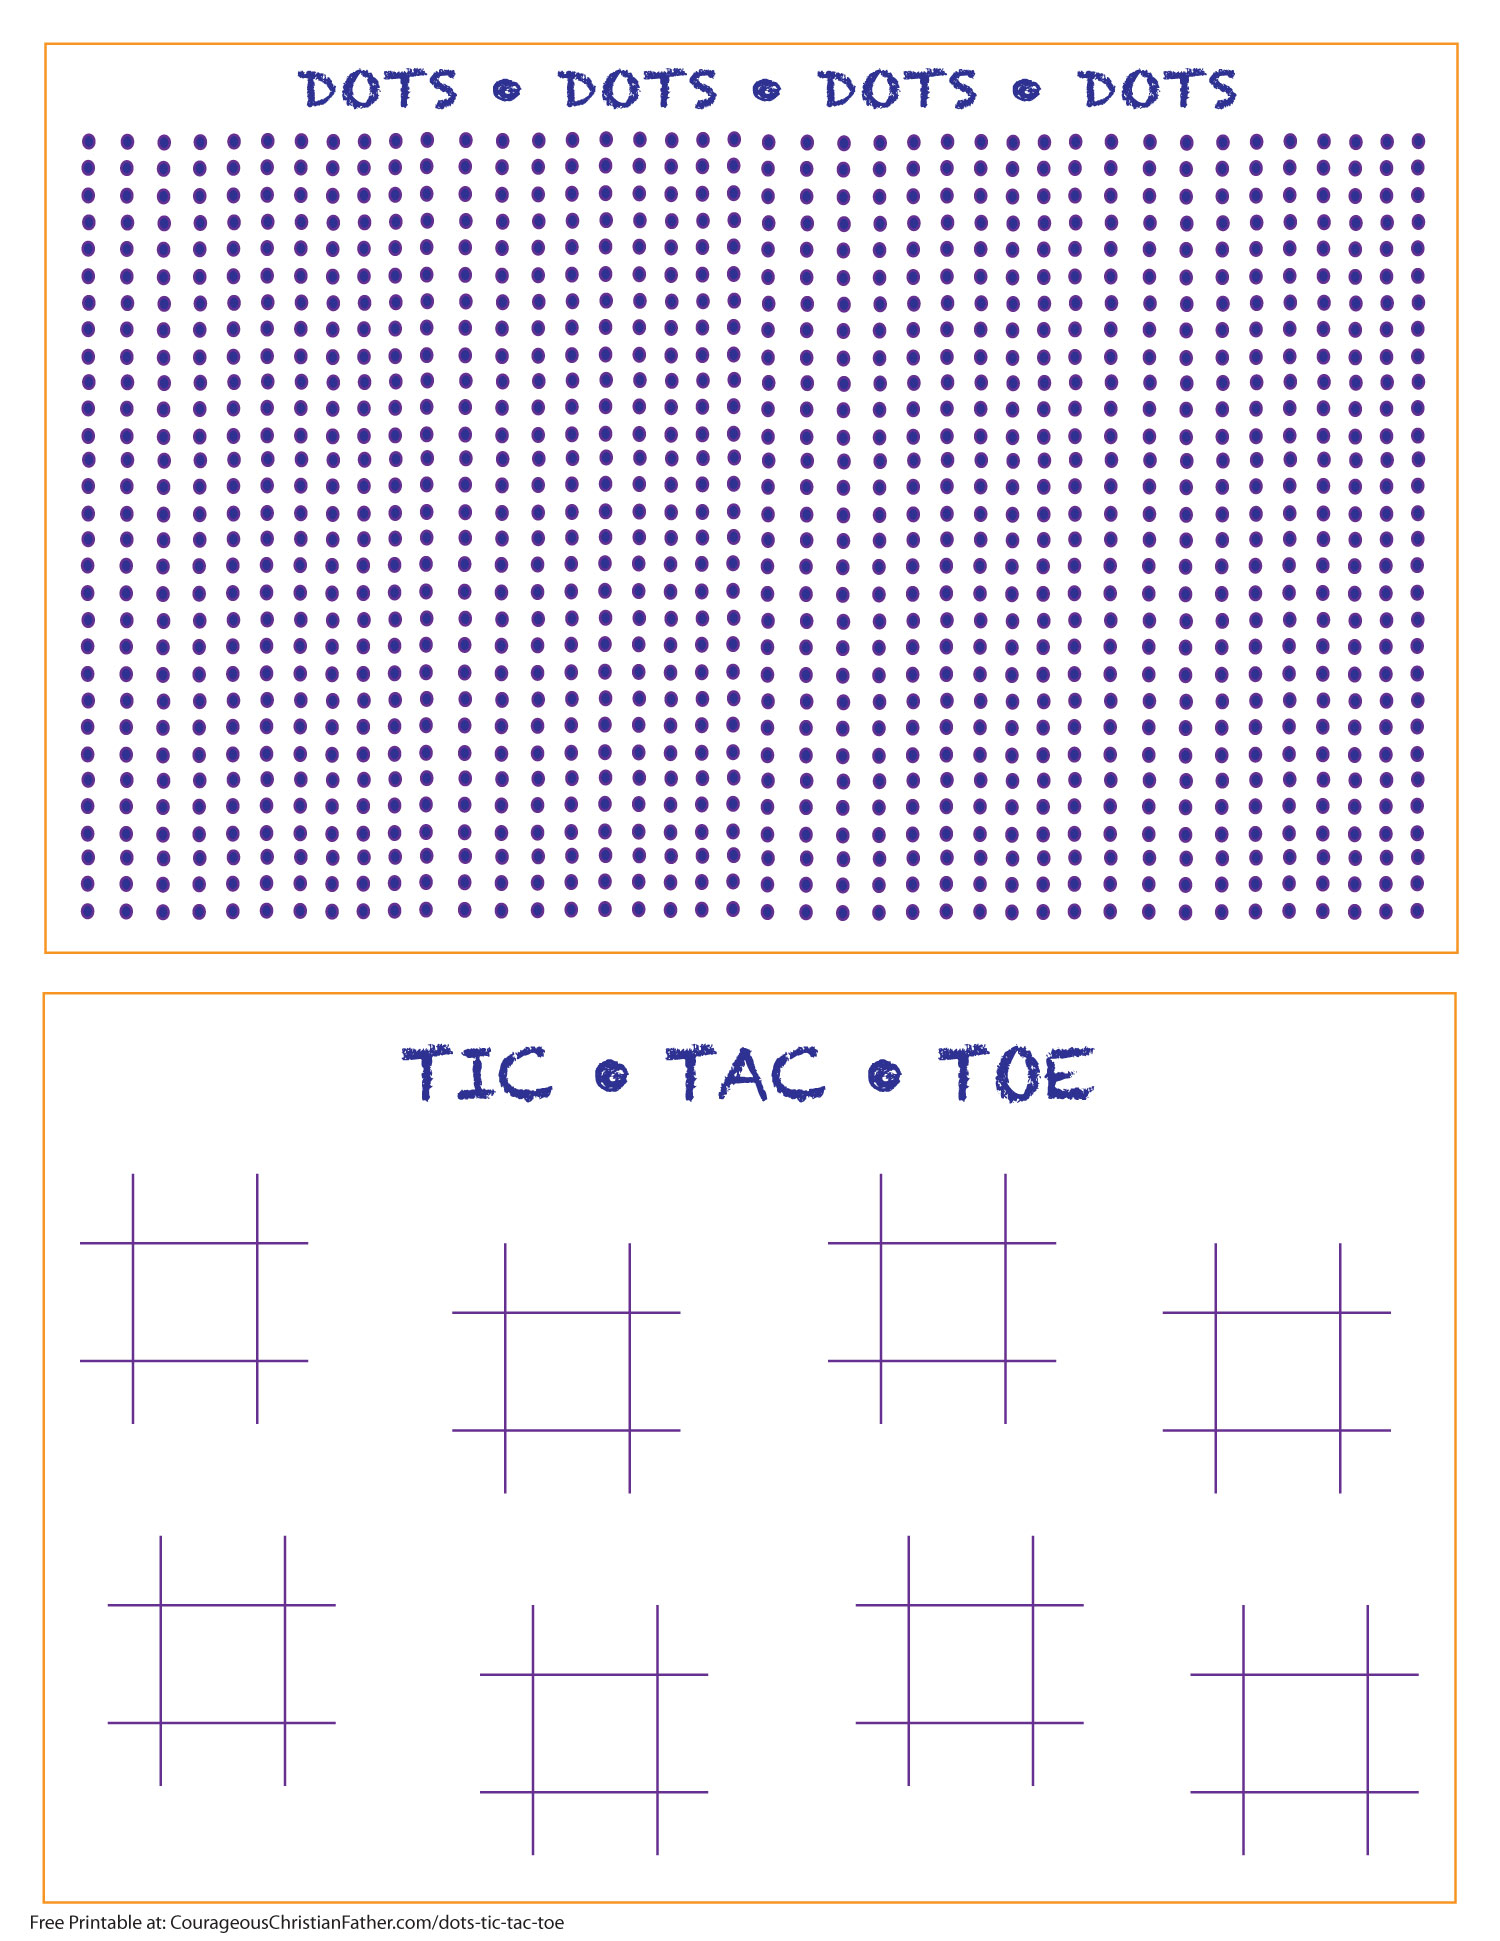 Dots Tic Tac Toe Printable - a Free printable for the Dots Game and also Tic Tac Toe. #Dots #TicTacToe